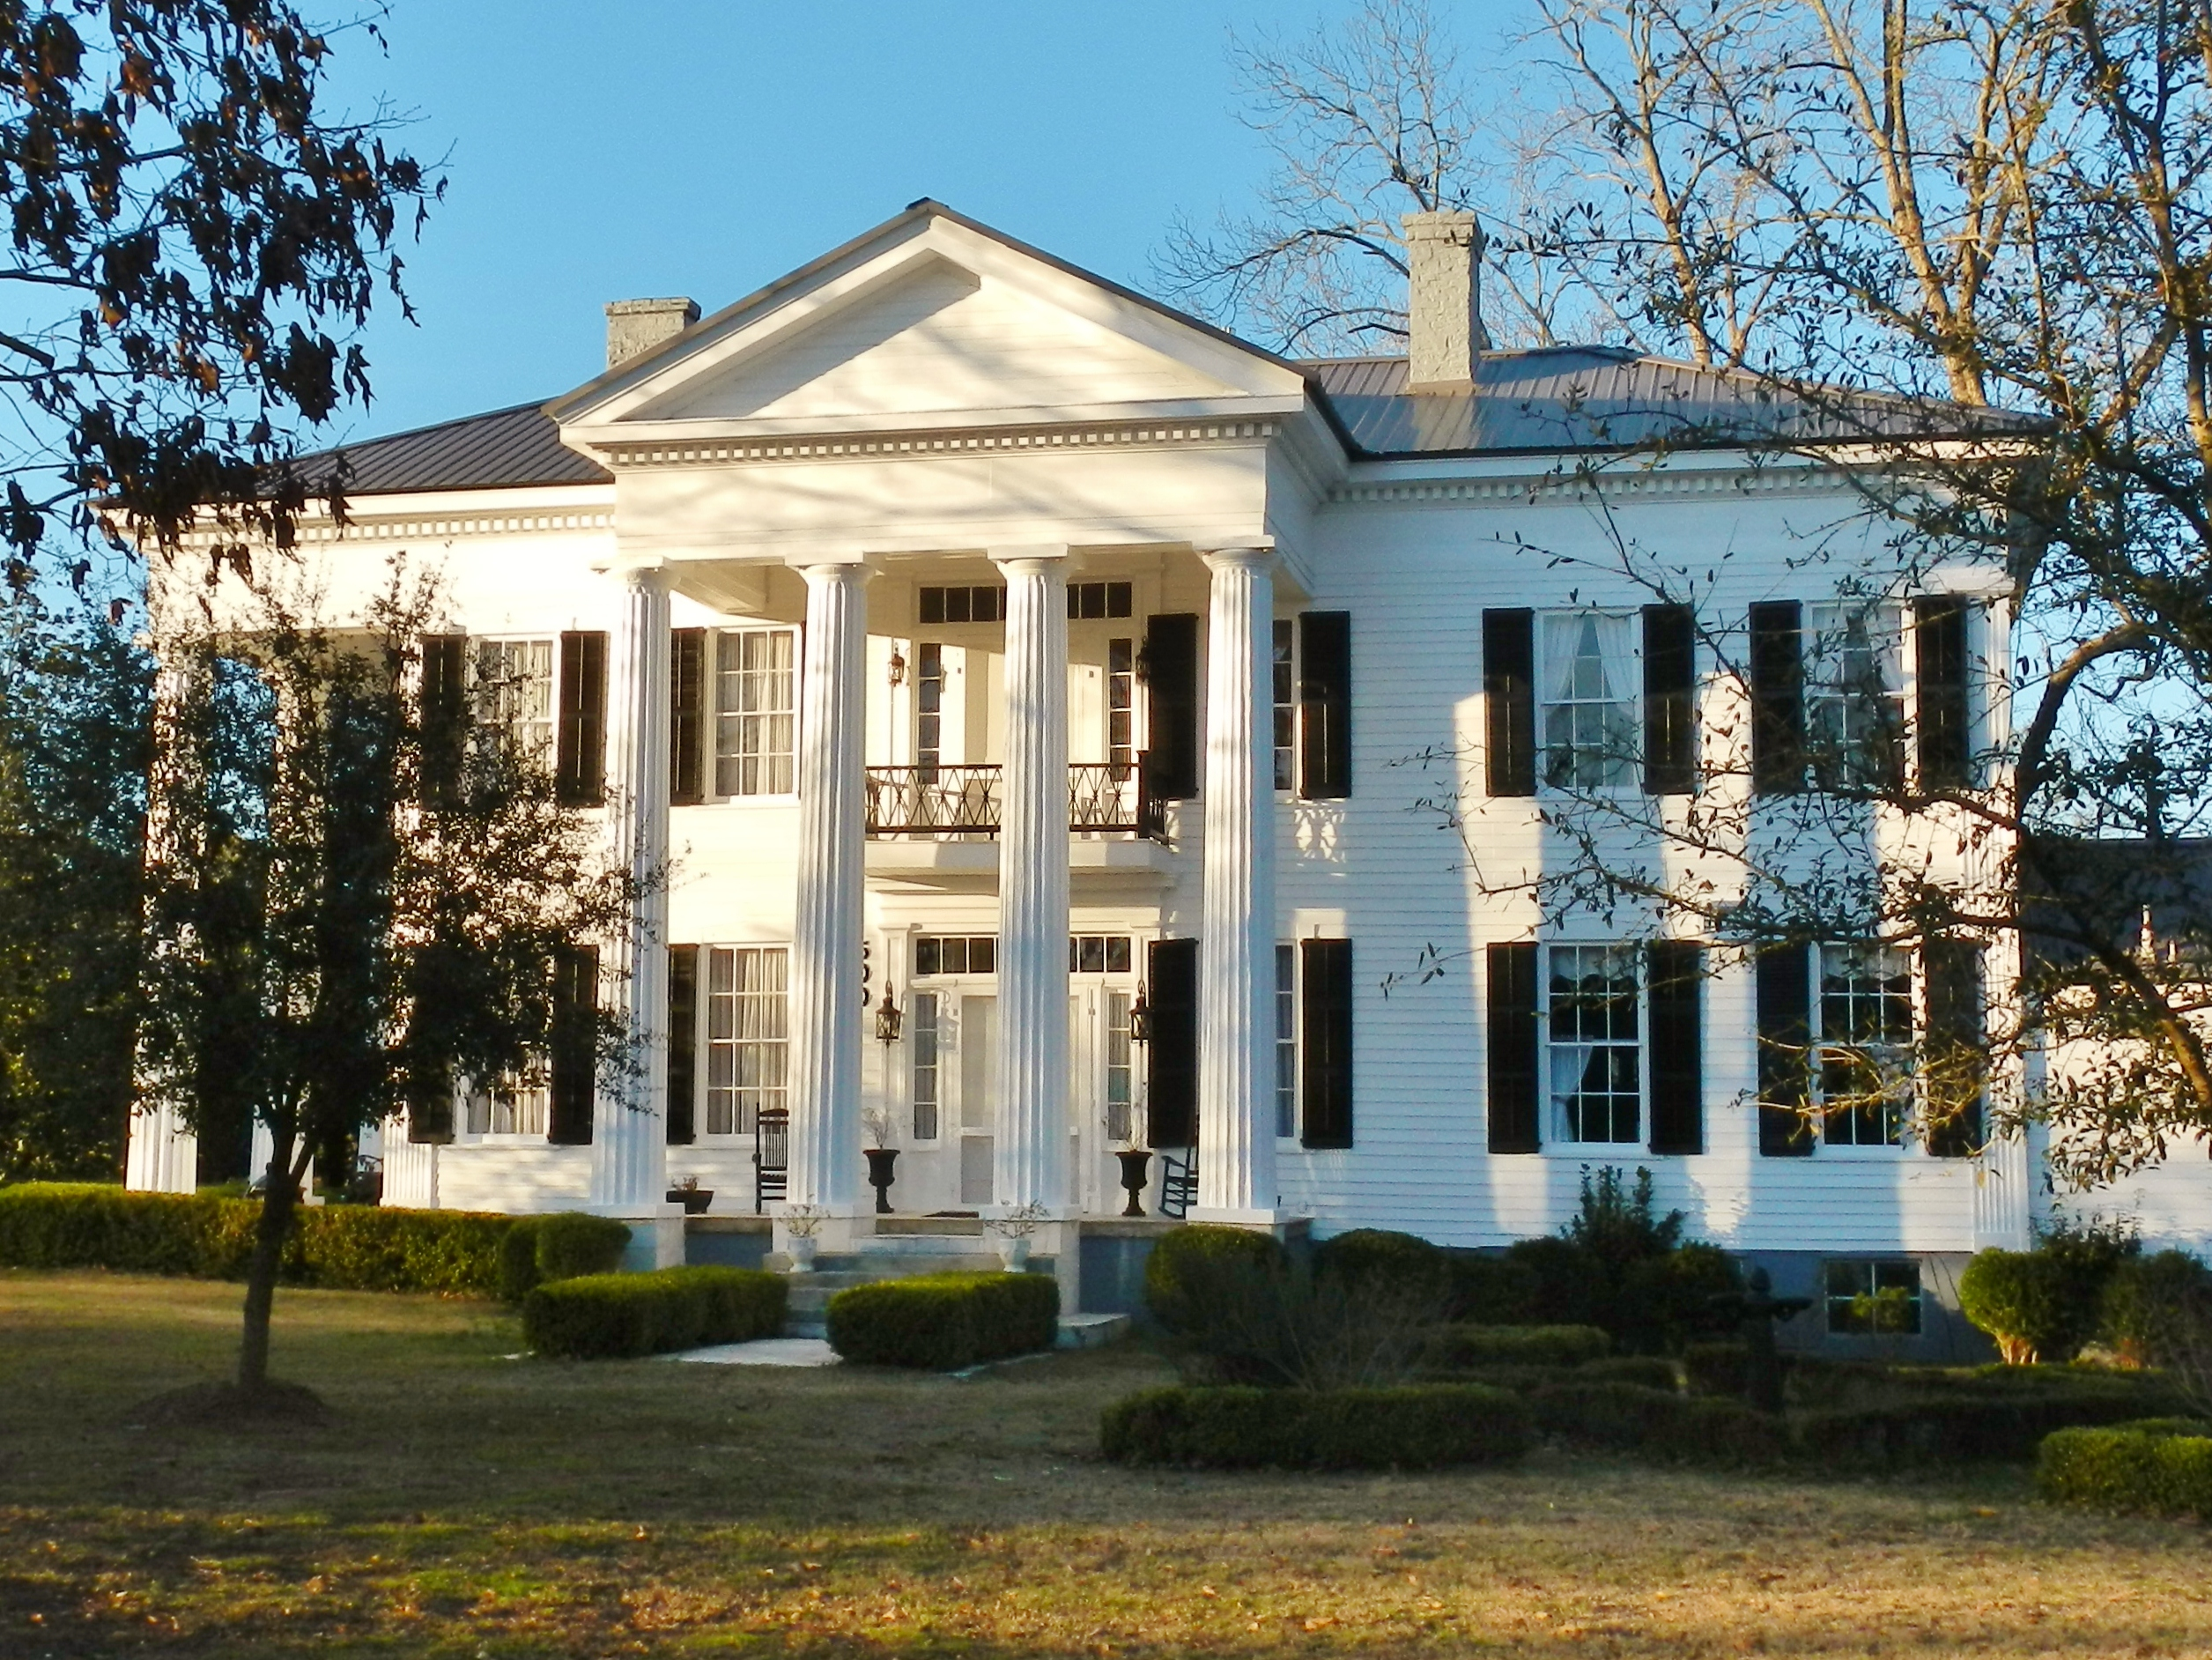 File The Pillars 1856 Lowndesboro Alabama Historic District on charleston sc mansions